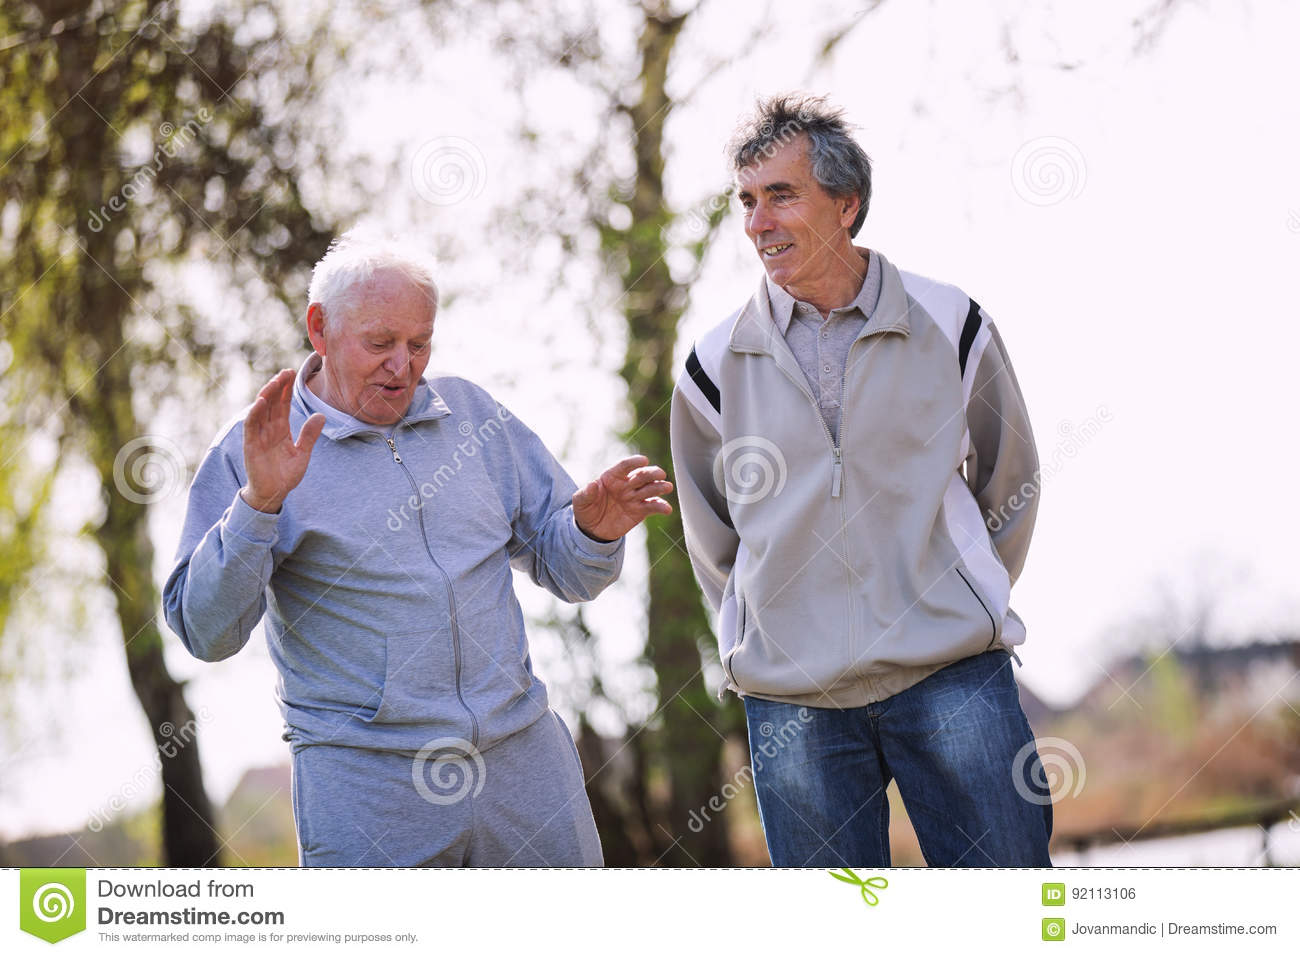 Adult son walking with his senior father